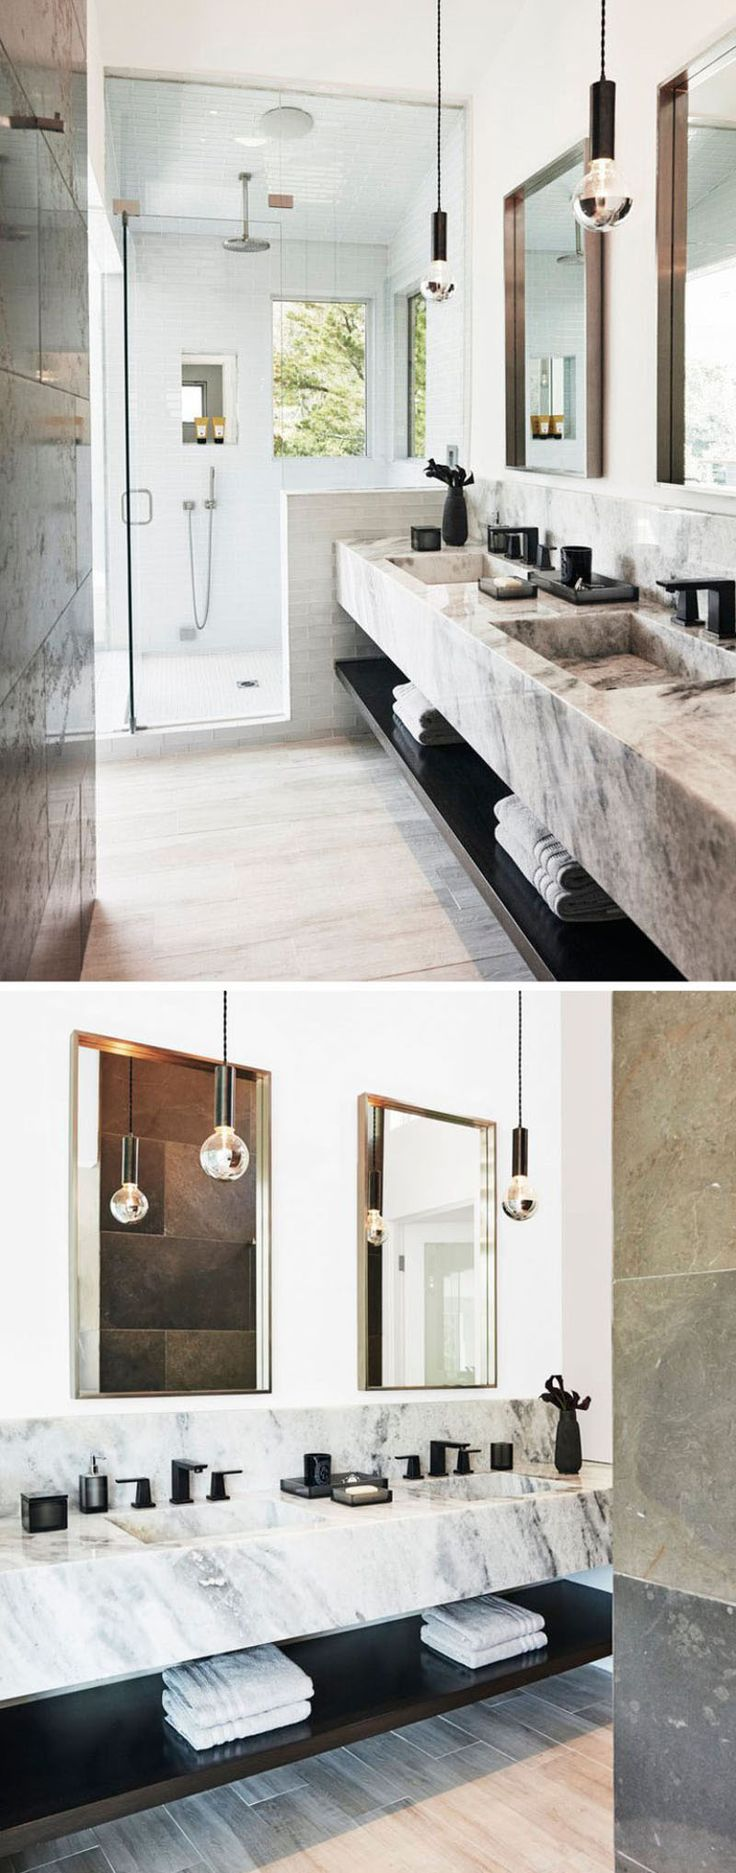 457 best Bathrooms images on Pinterest | Bathroom, Bath design and ...